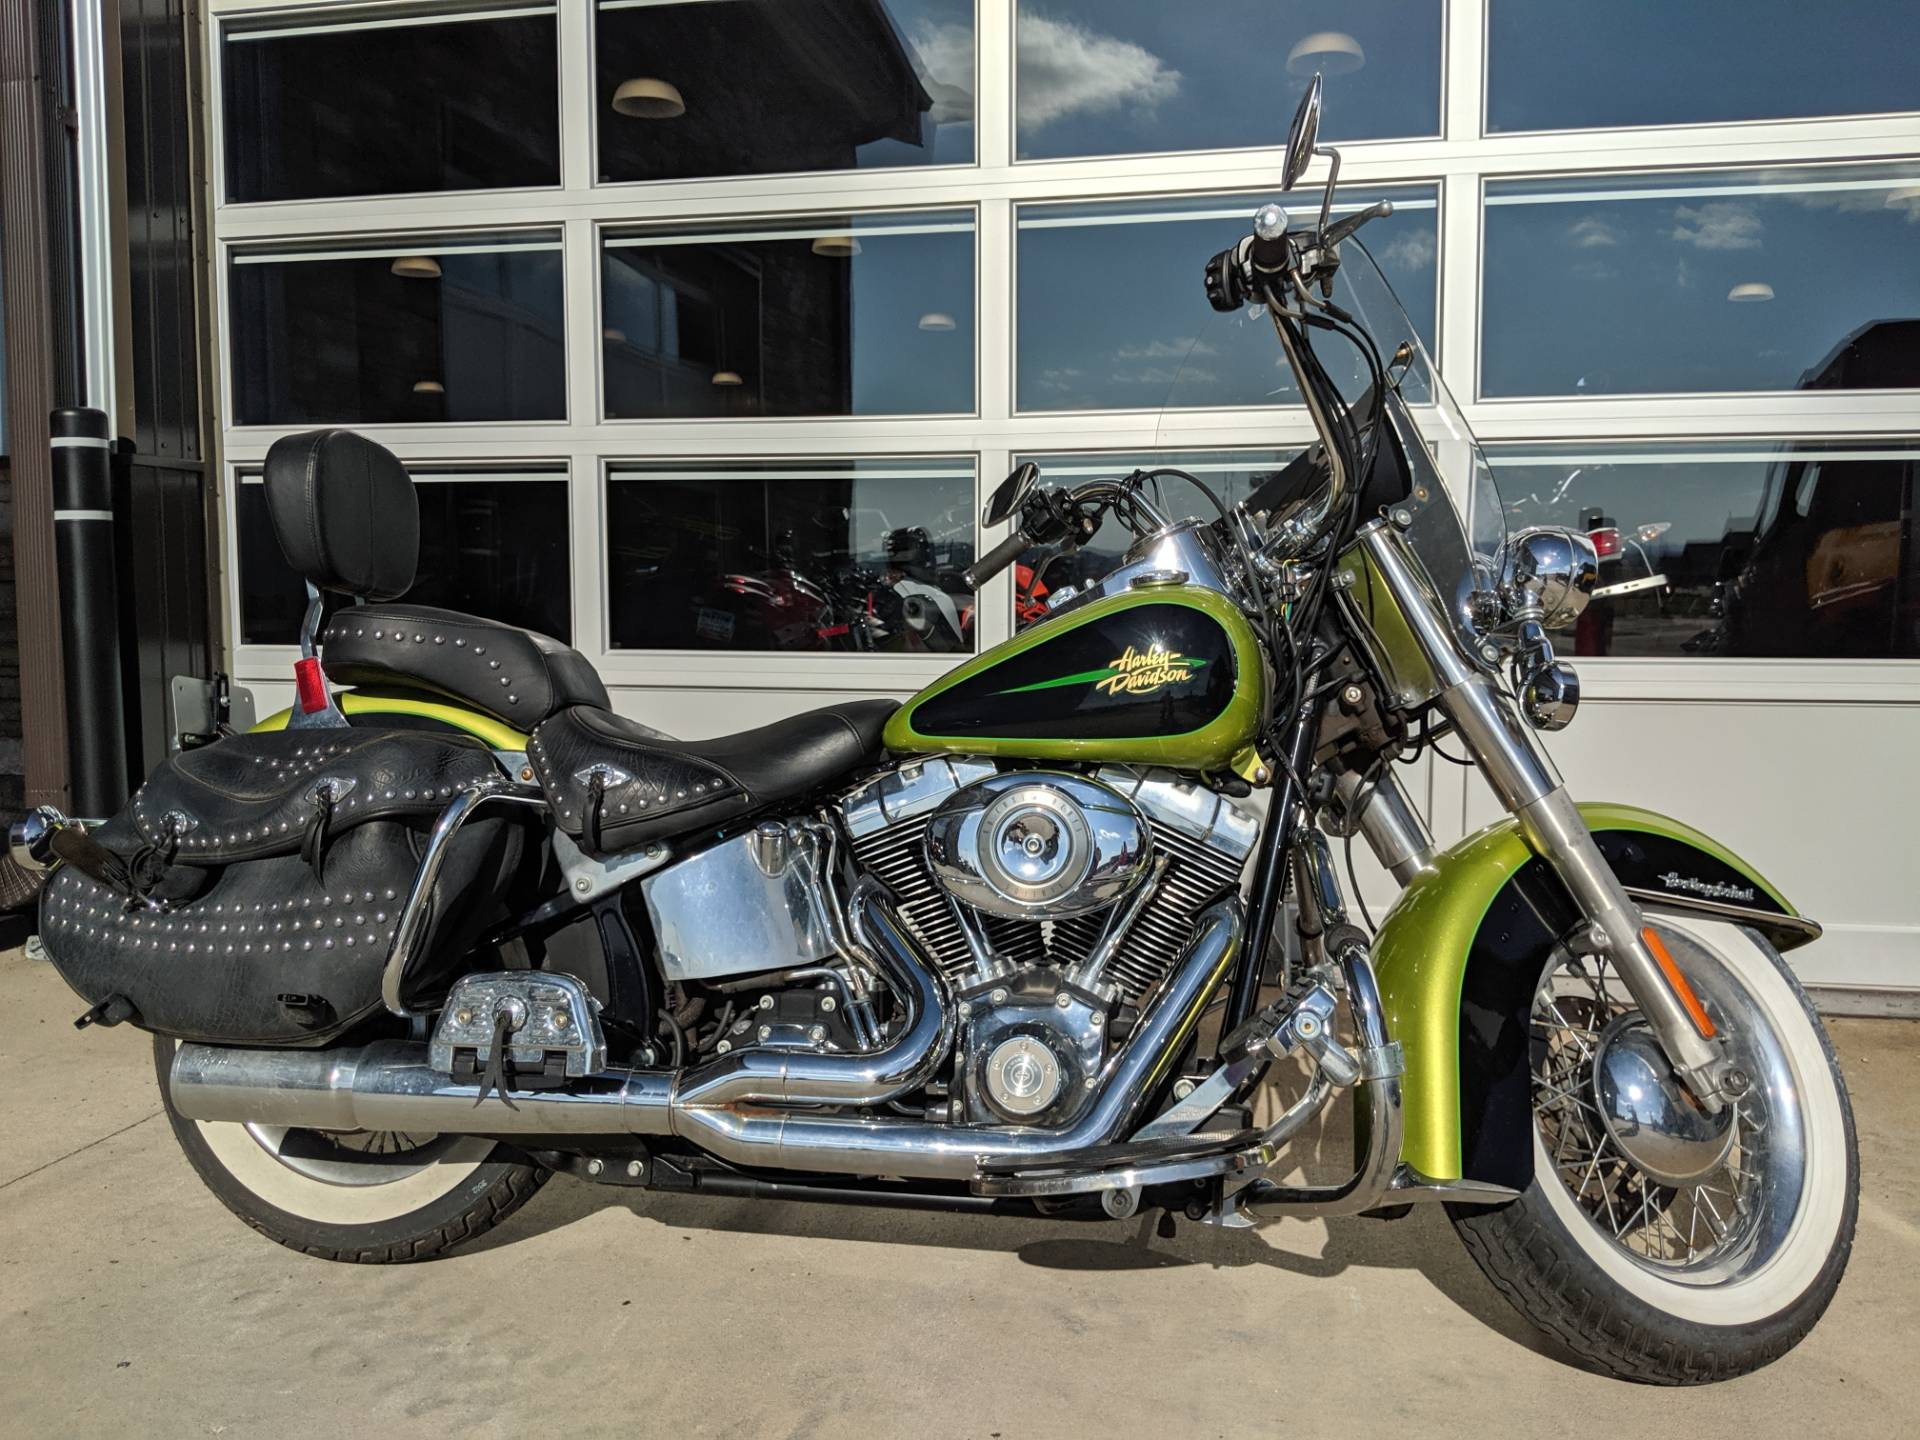 Harley Heritage Softail >> 2011 Harley Davidson Heritage Softail Classic In Rapid City South Dakota